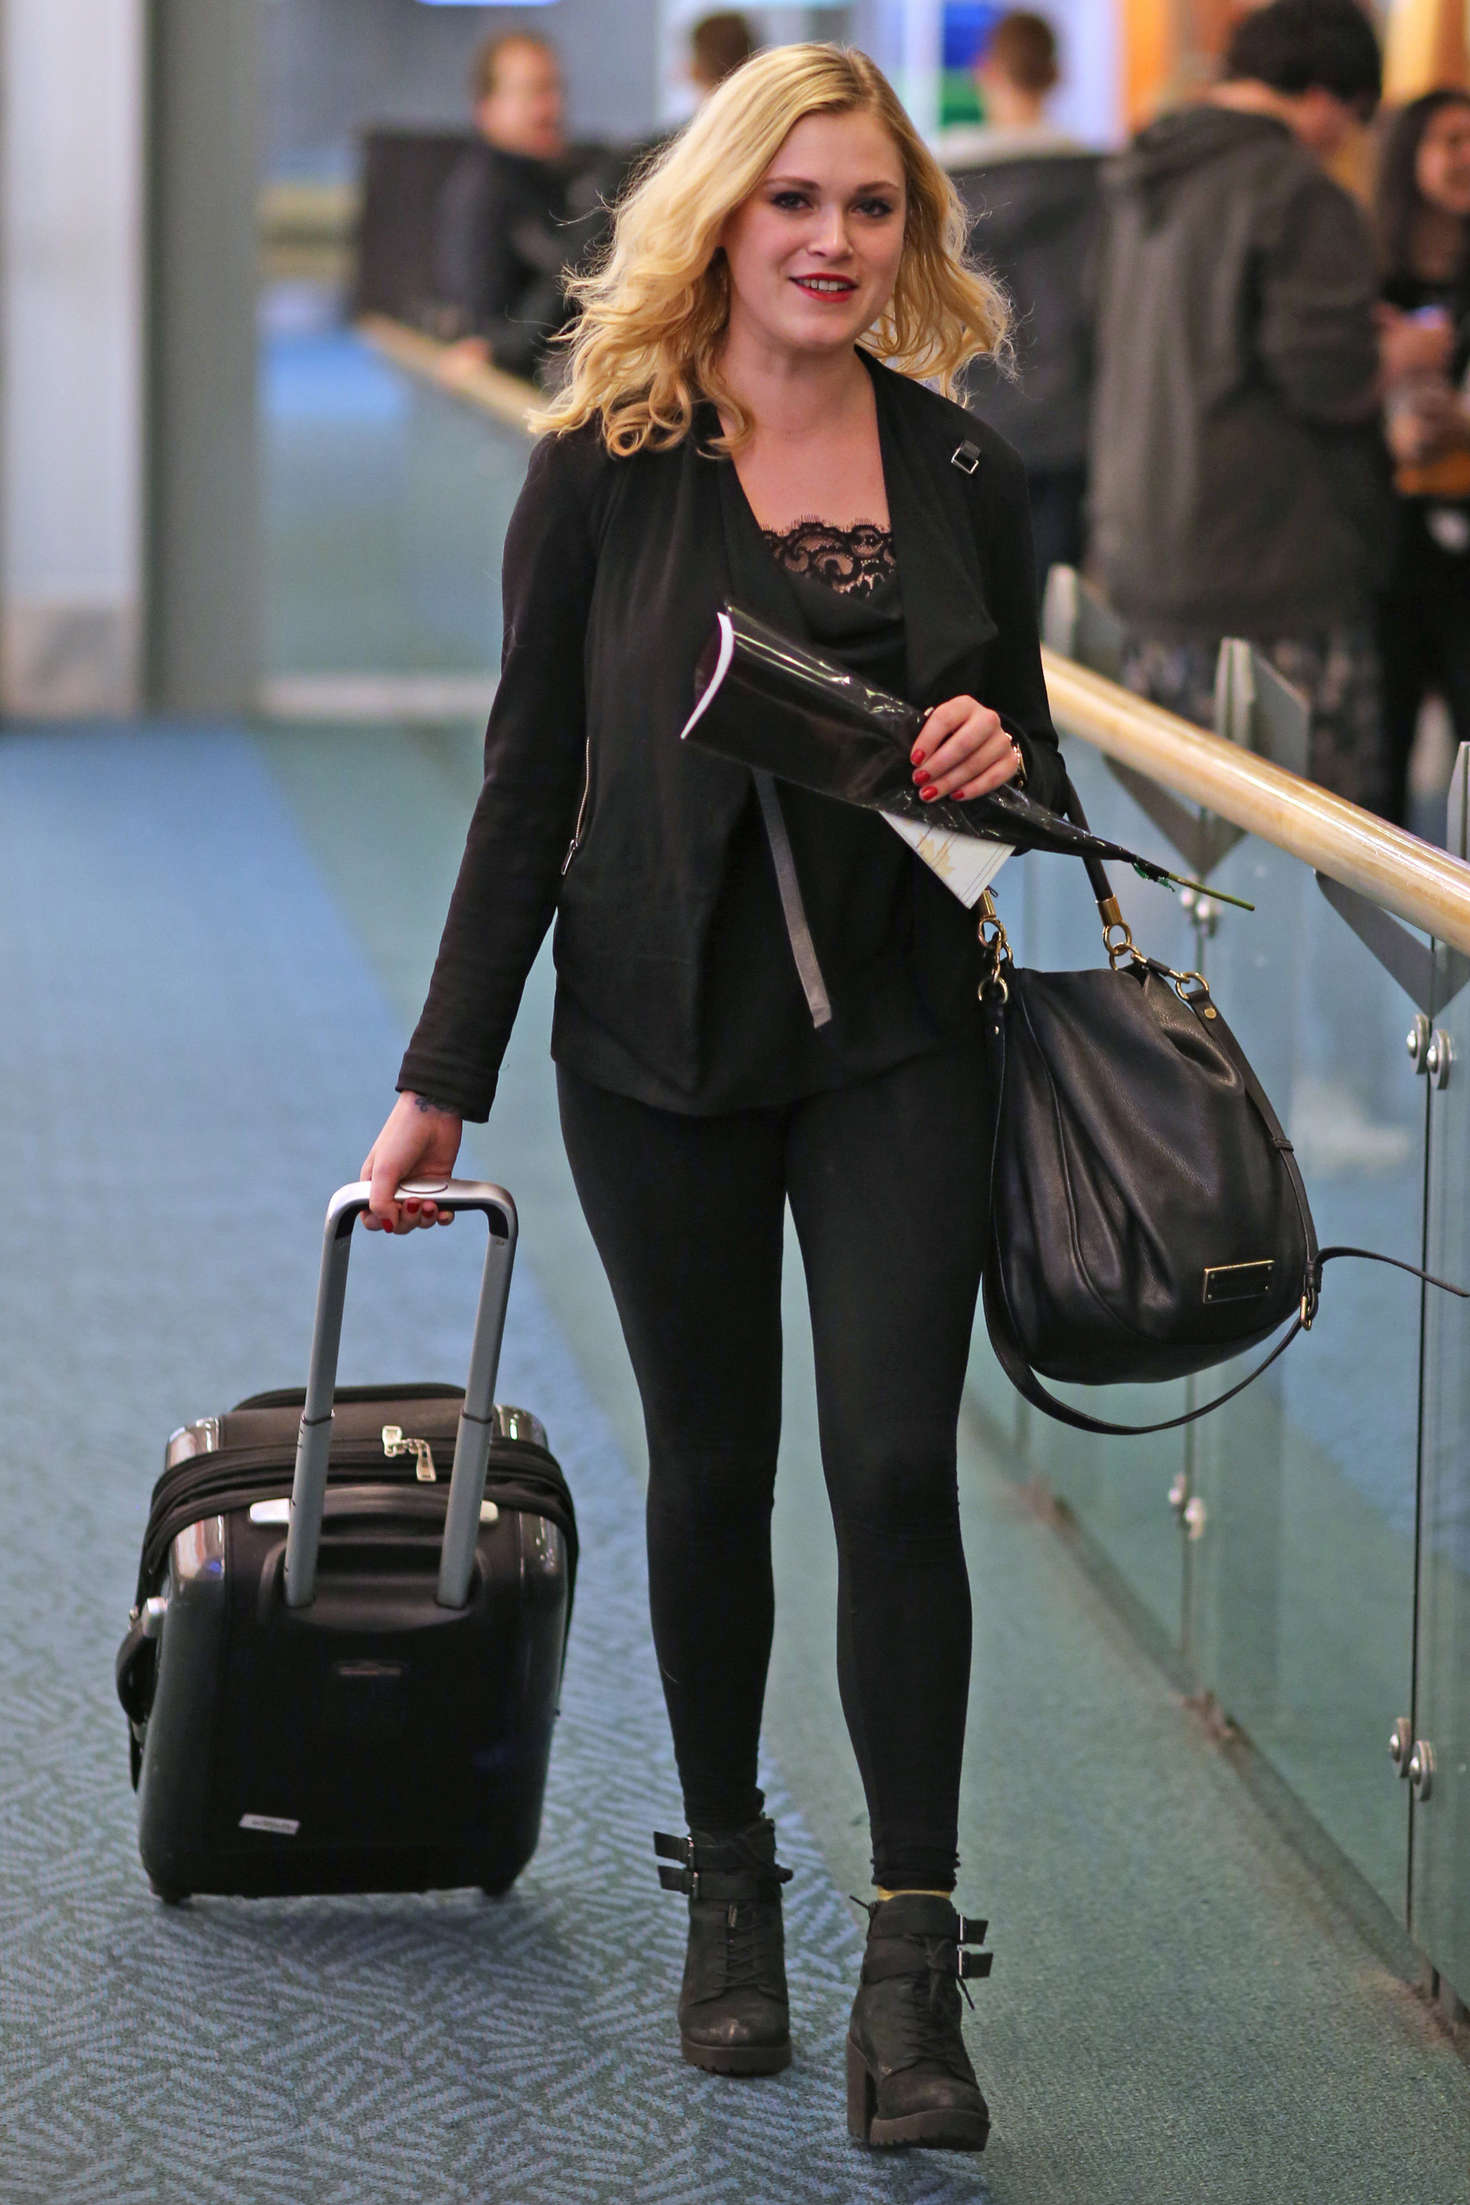 back to post eliza taylor arriving in vancouver